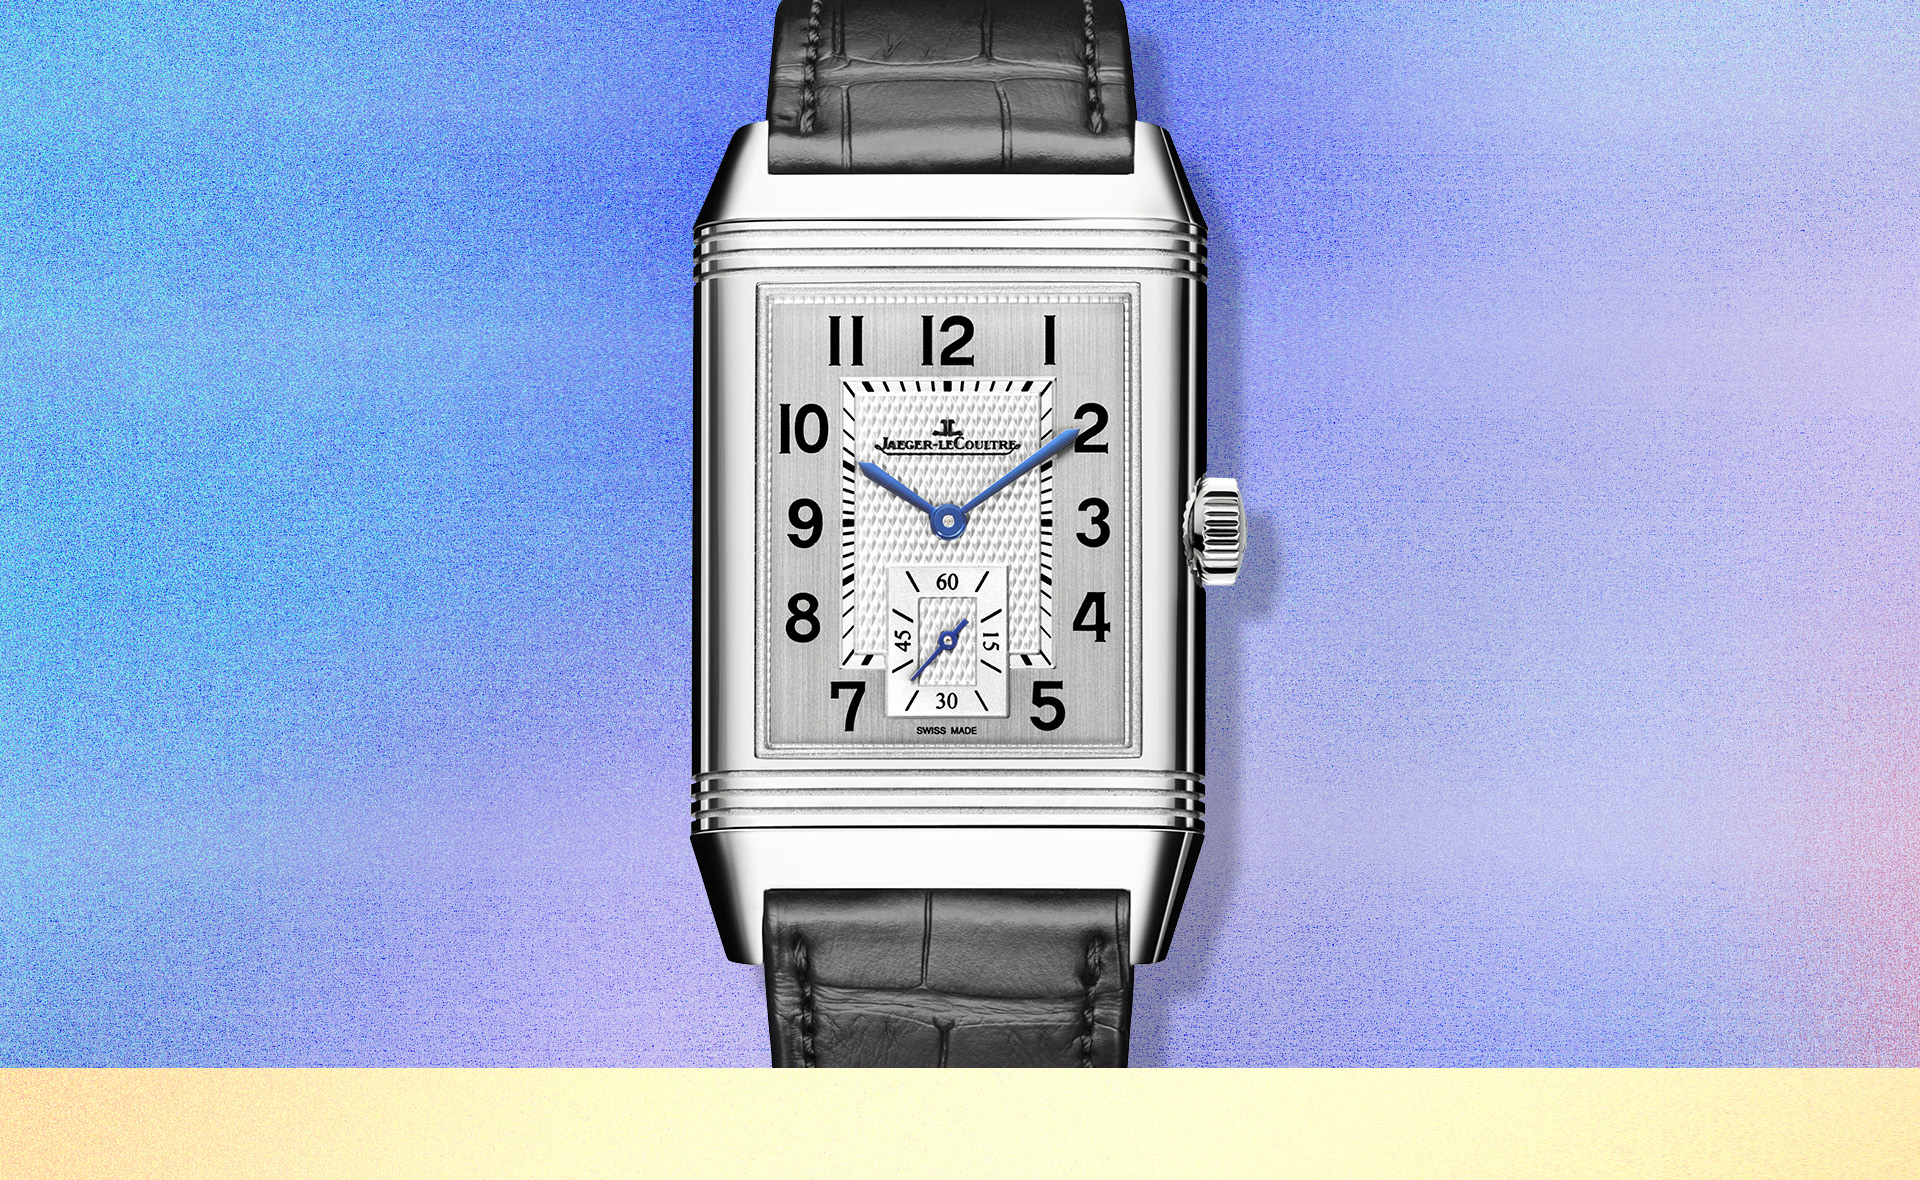 Jaeger-LeCoultre Reverso Classic Large Small Seconds watch